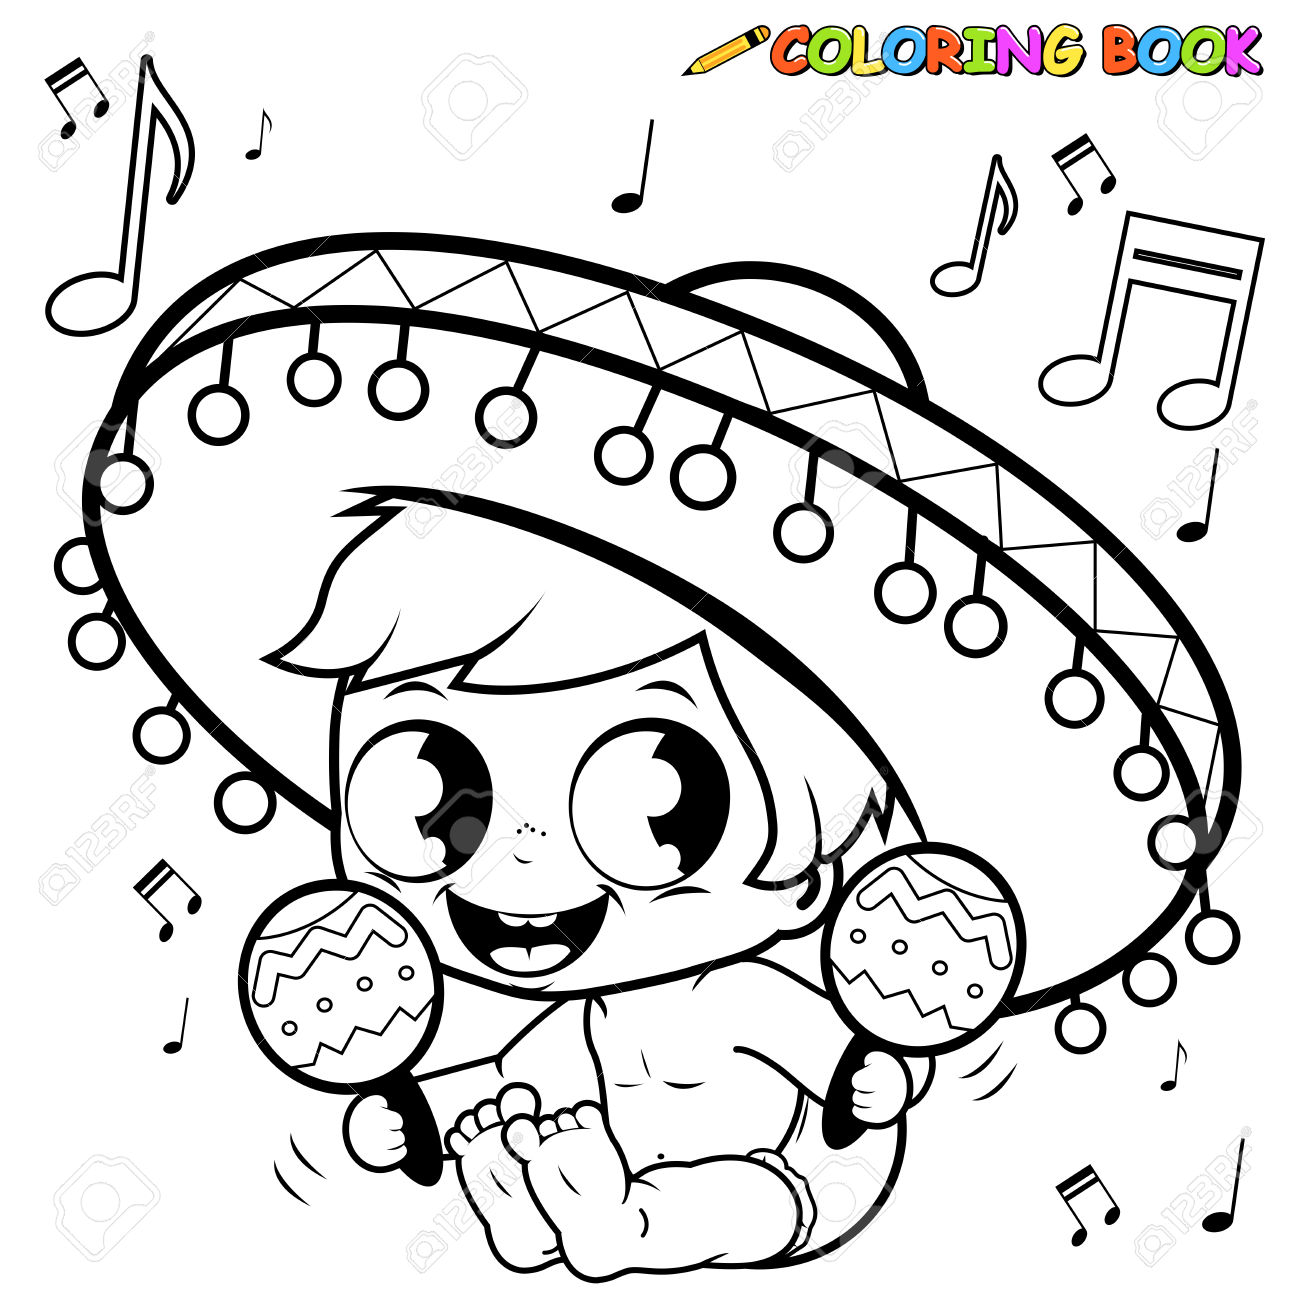 Free Printable Day of the Dead Coloring Pages - Best Coloring ... | 1300x1300